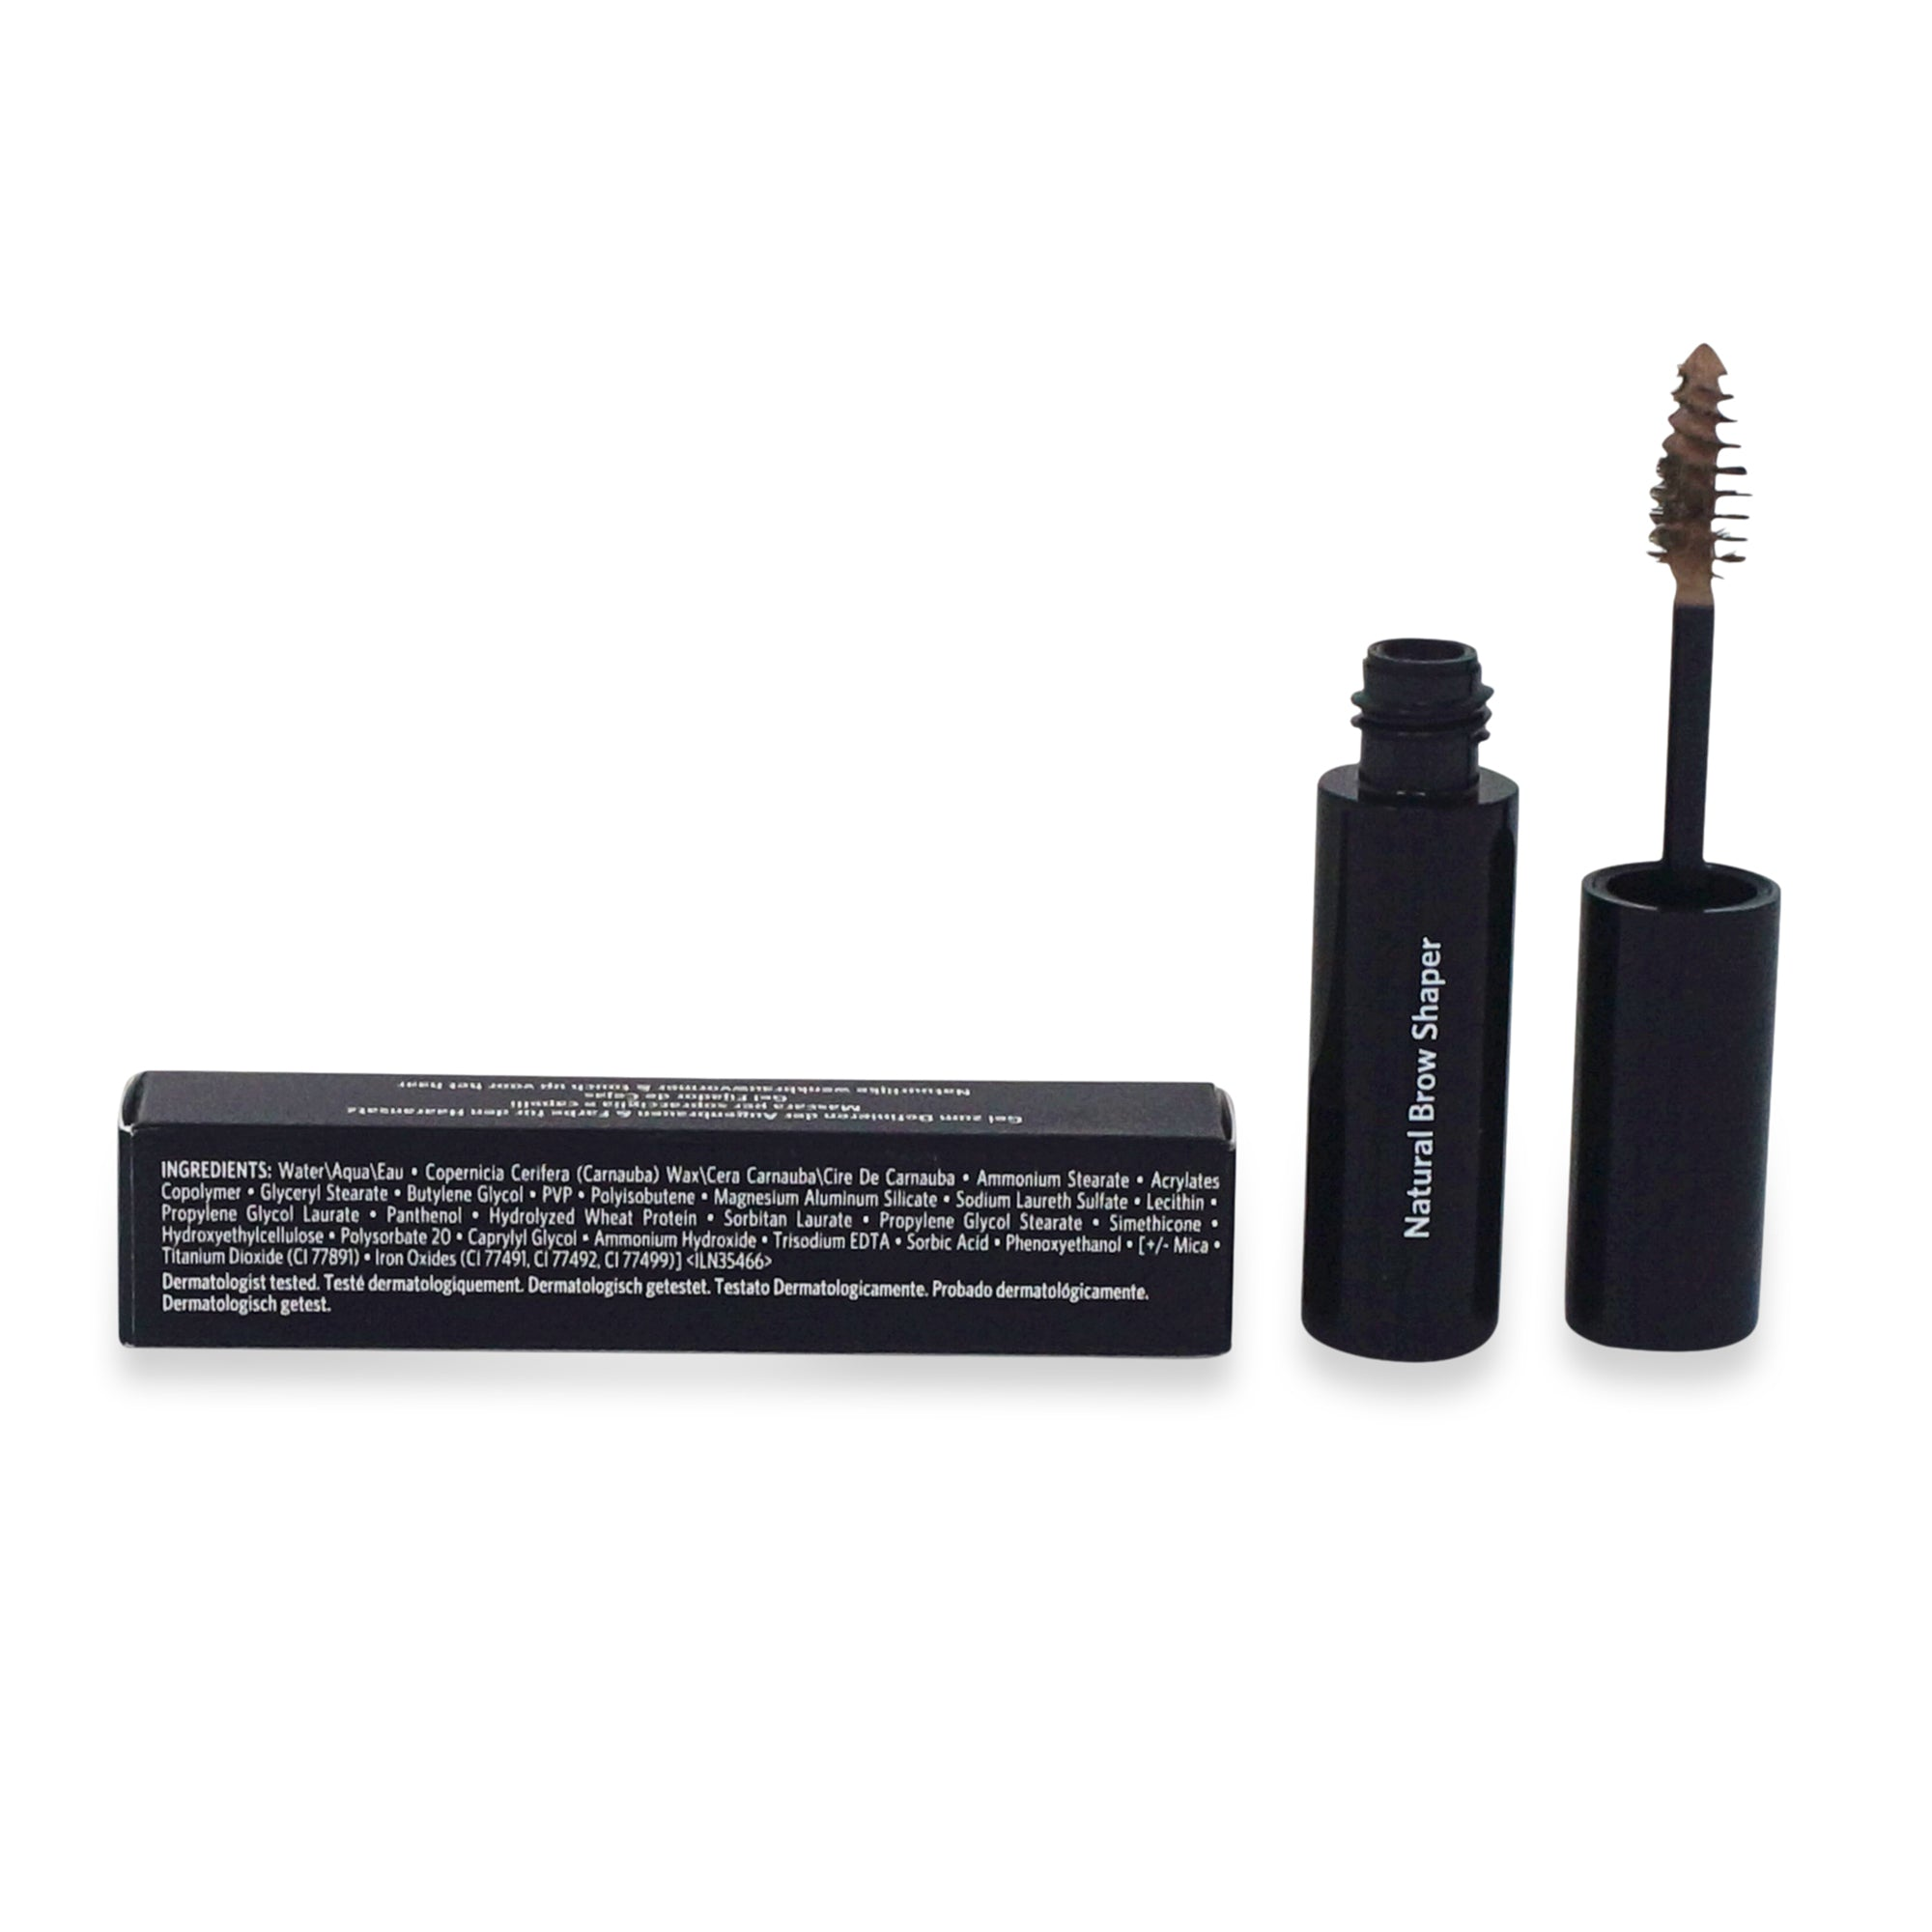 Bobbi Brown Natural Brow Shaper Hair & Touch Up Blonde .14 Oz